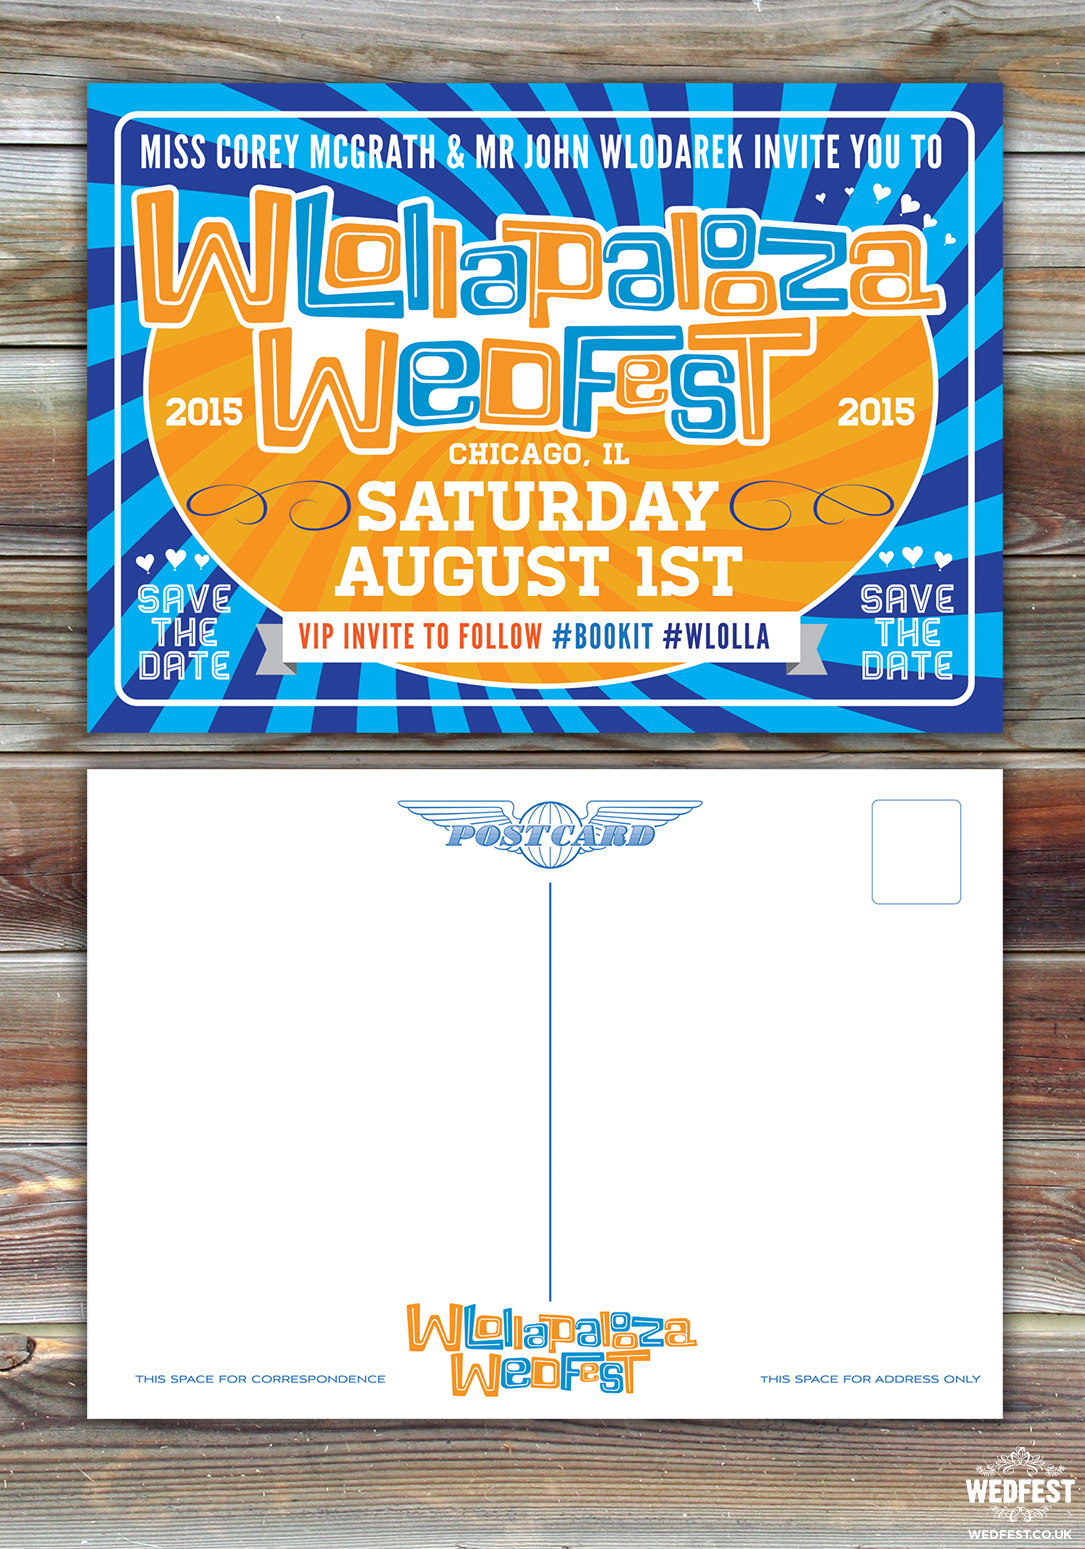 American Music Festival themed wedding save the date cards